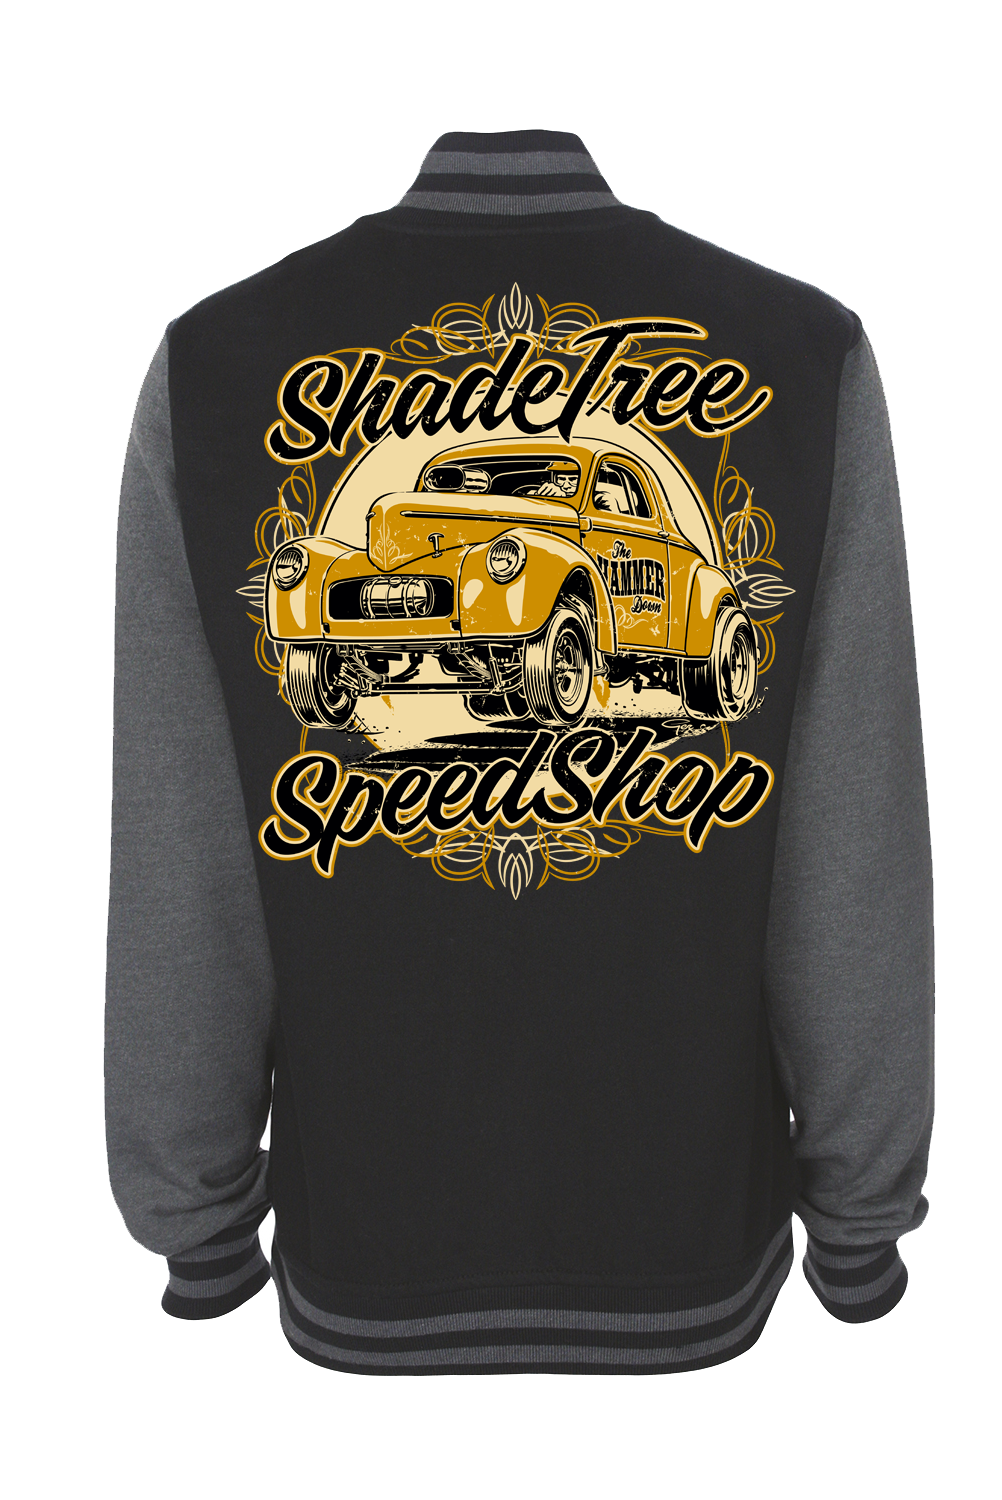 """SHADE TREE SPEED SHOP """"Willys"""" VARSITY JACKET UNISEX by Ger """"Dutch Courage"""" Peters artwork"""